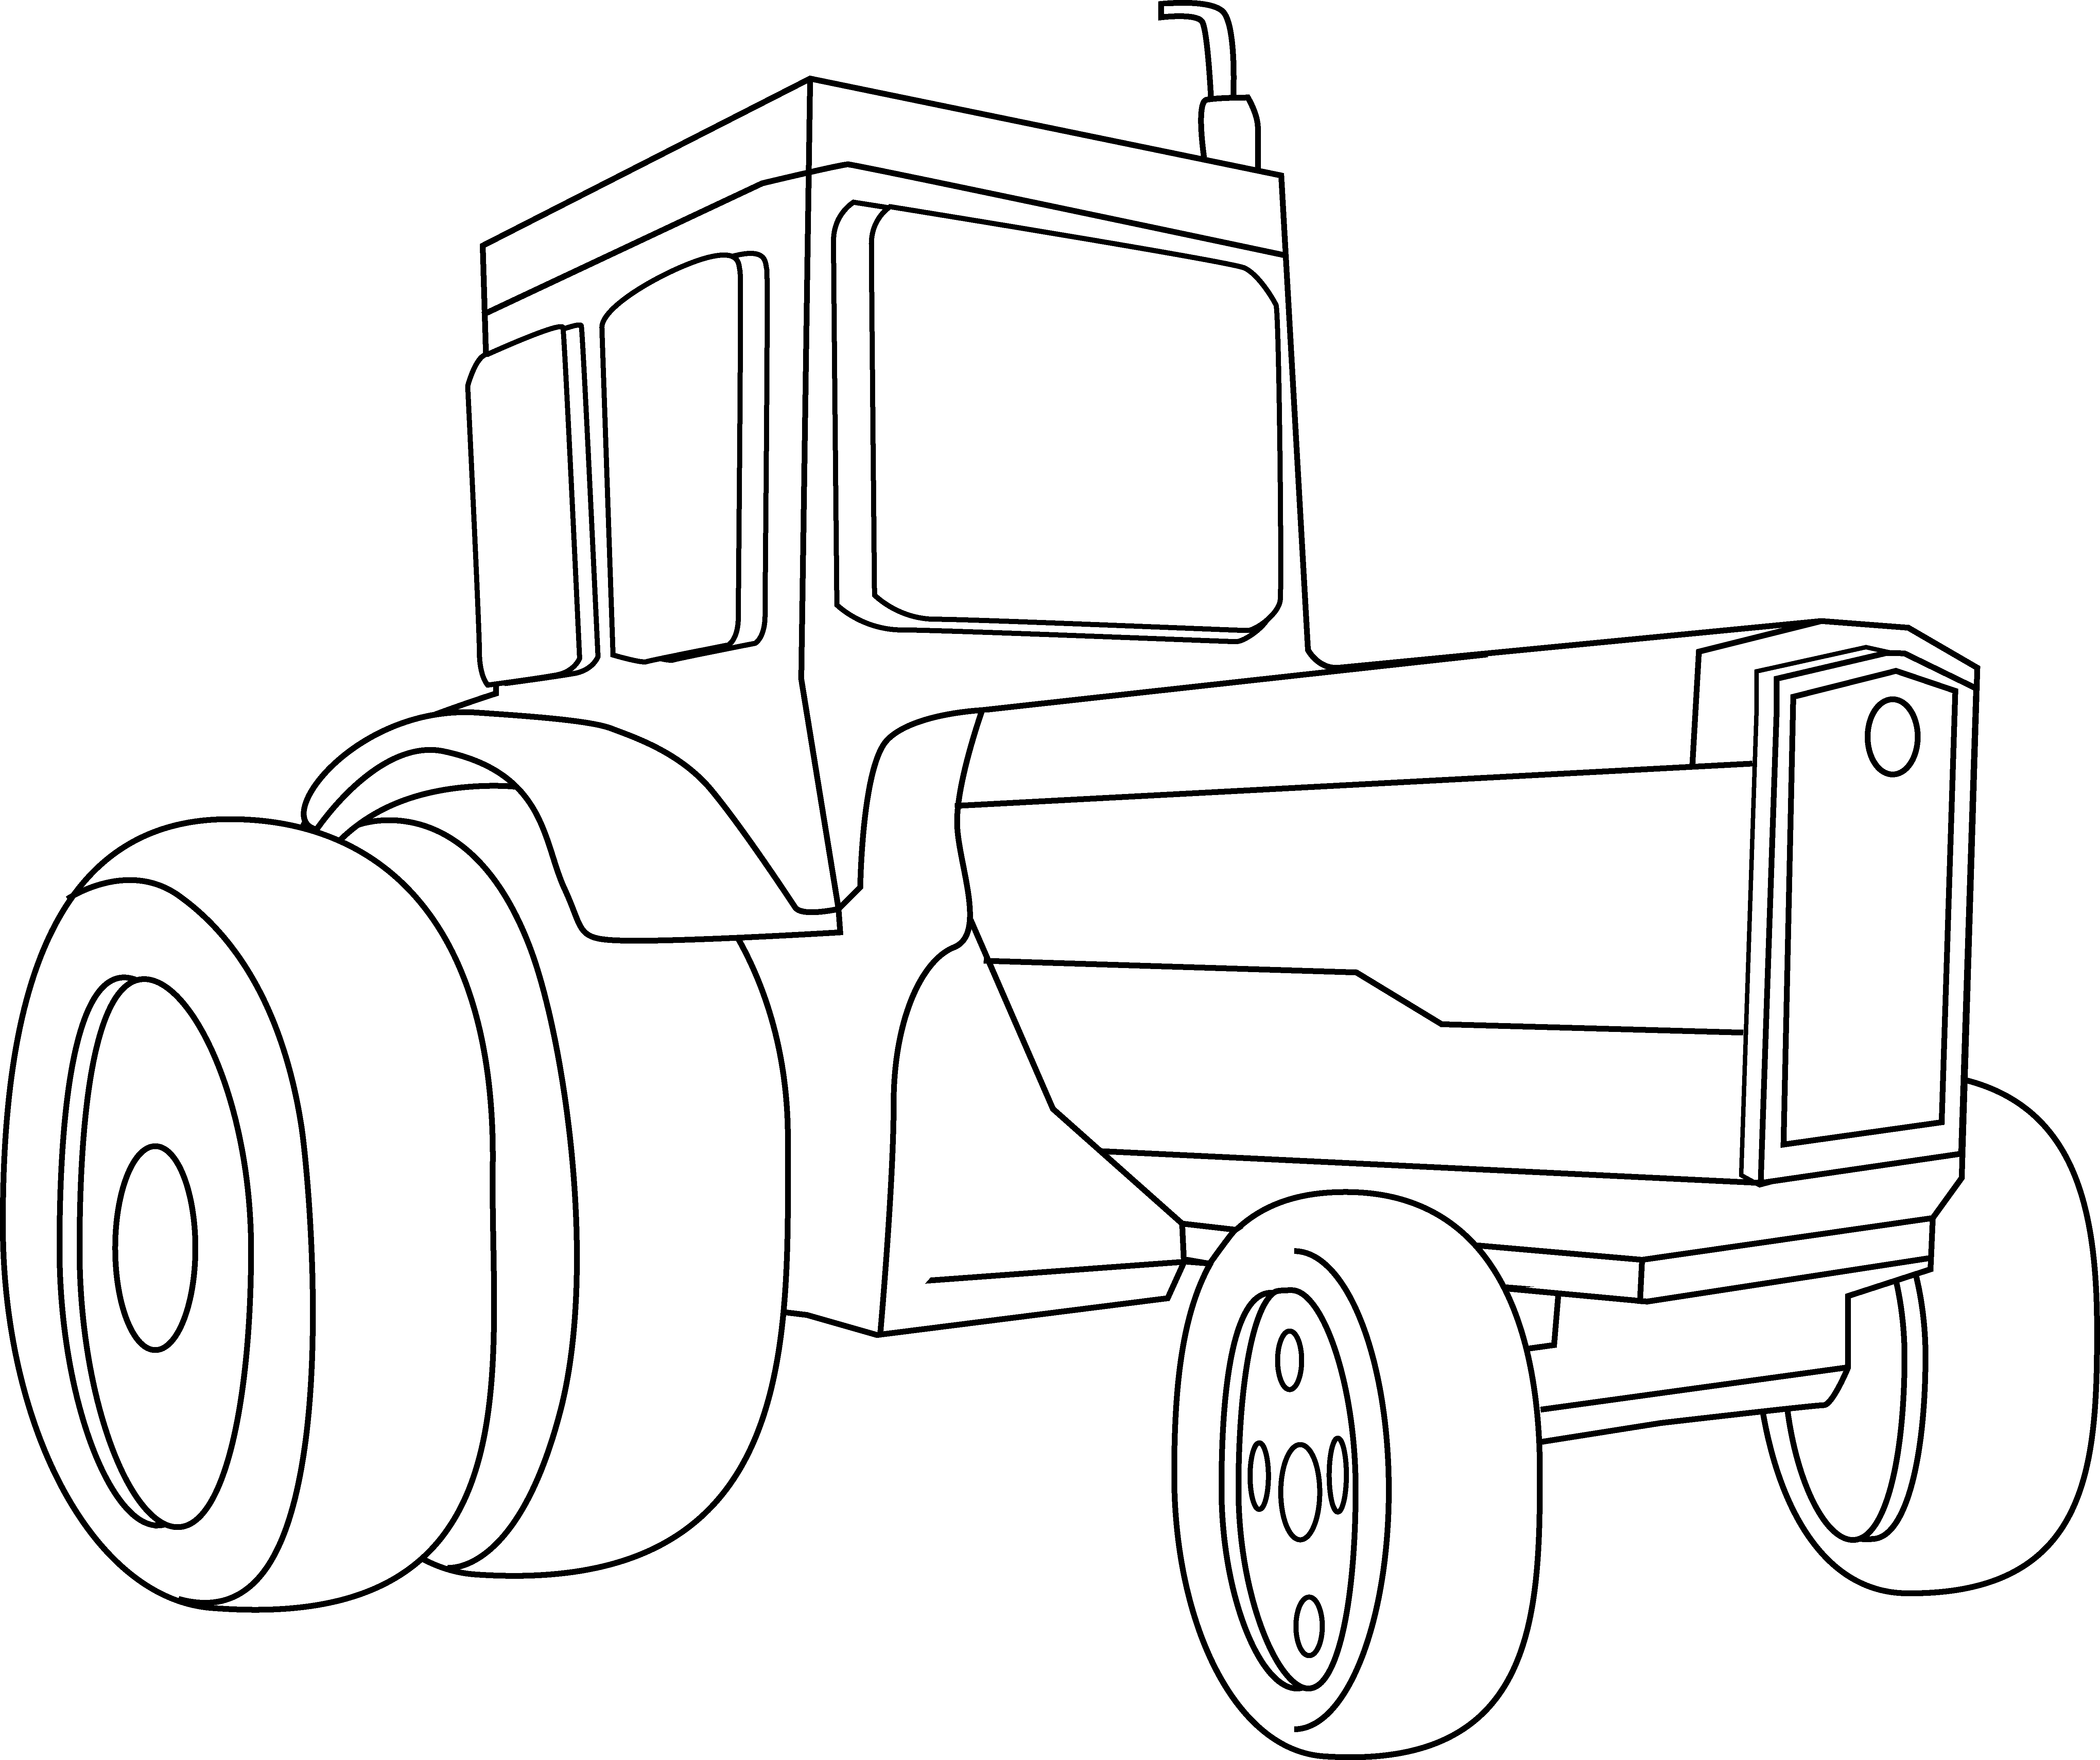 Coloring page free clip. Wheel clipart tractor wheel